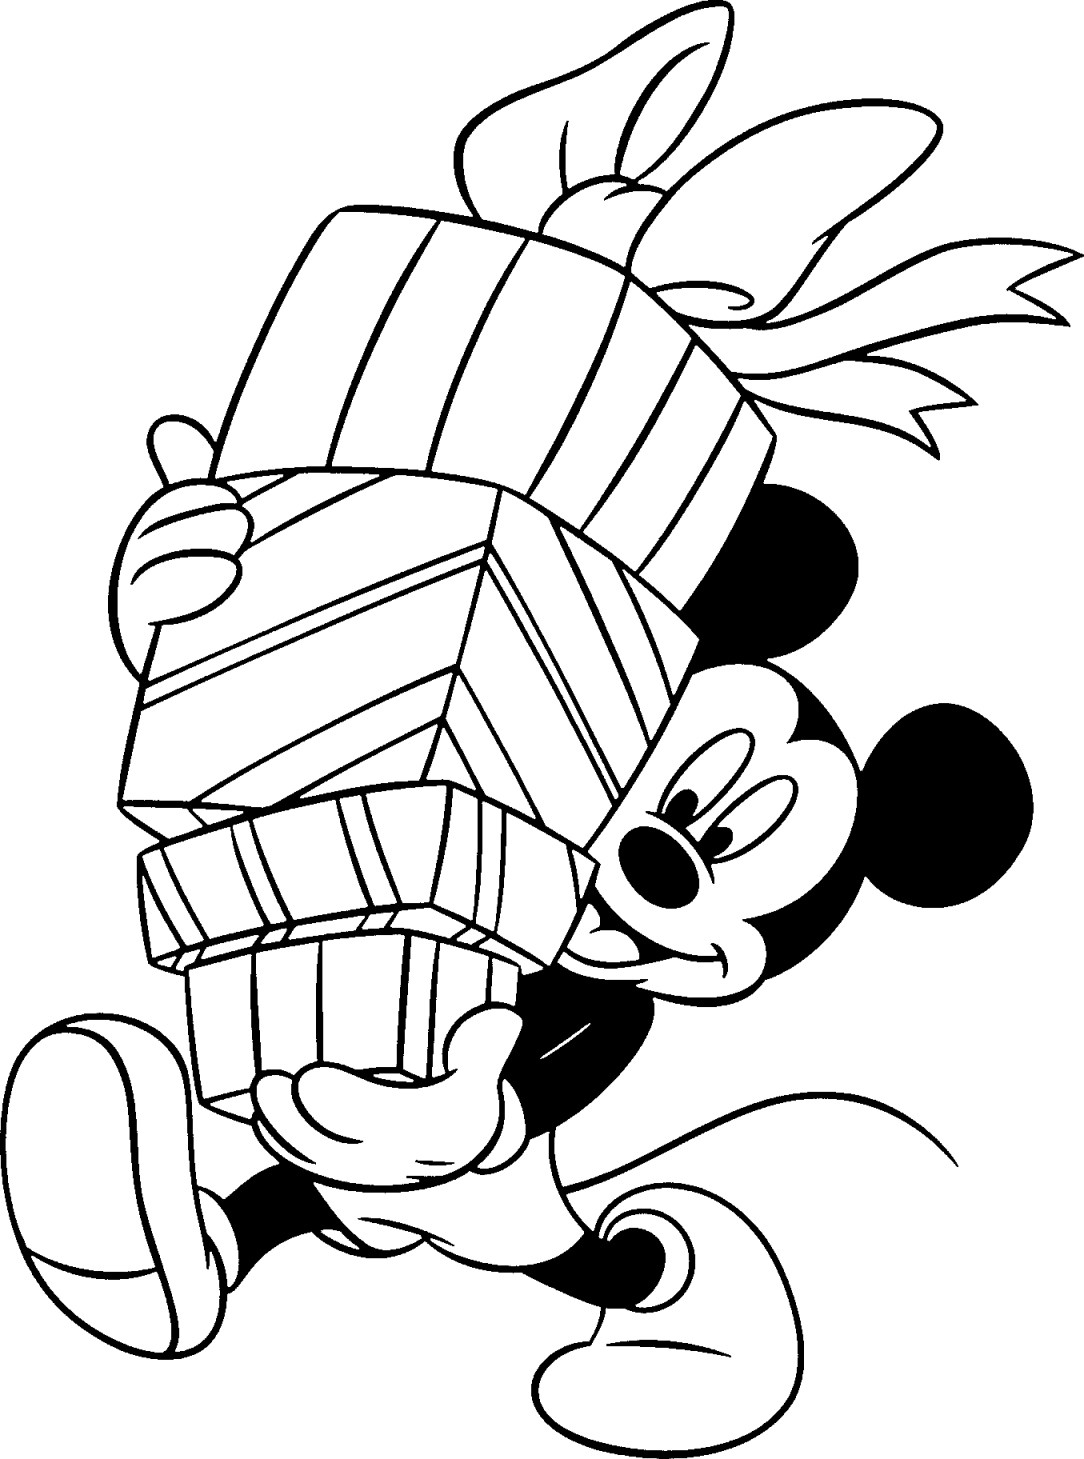 mickey mouse coloring mickey mouse coloring pages 4 disney39s world of wonders coloring mickey mouse